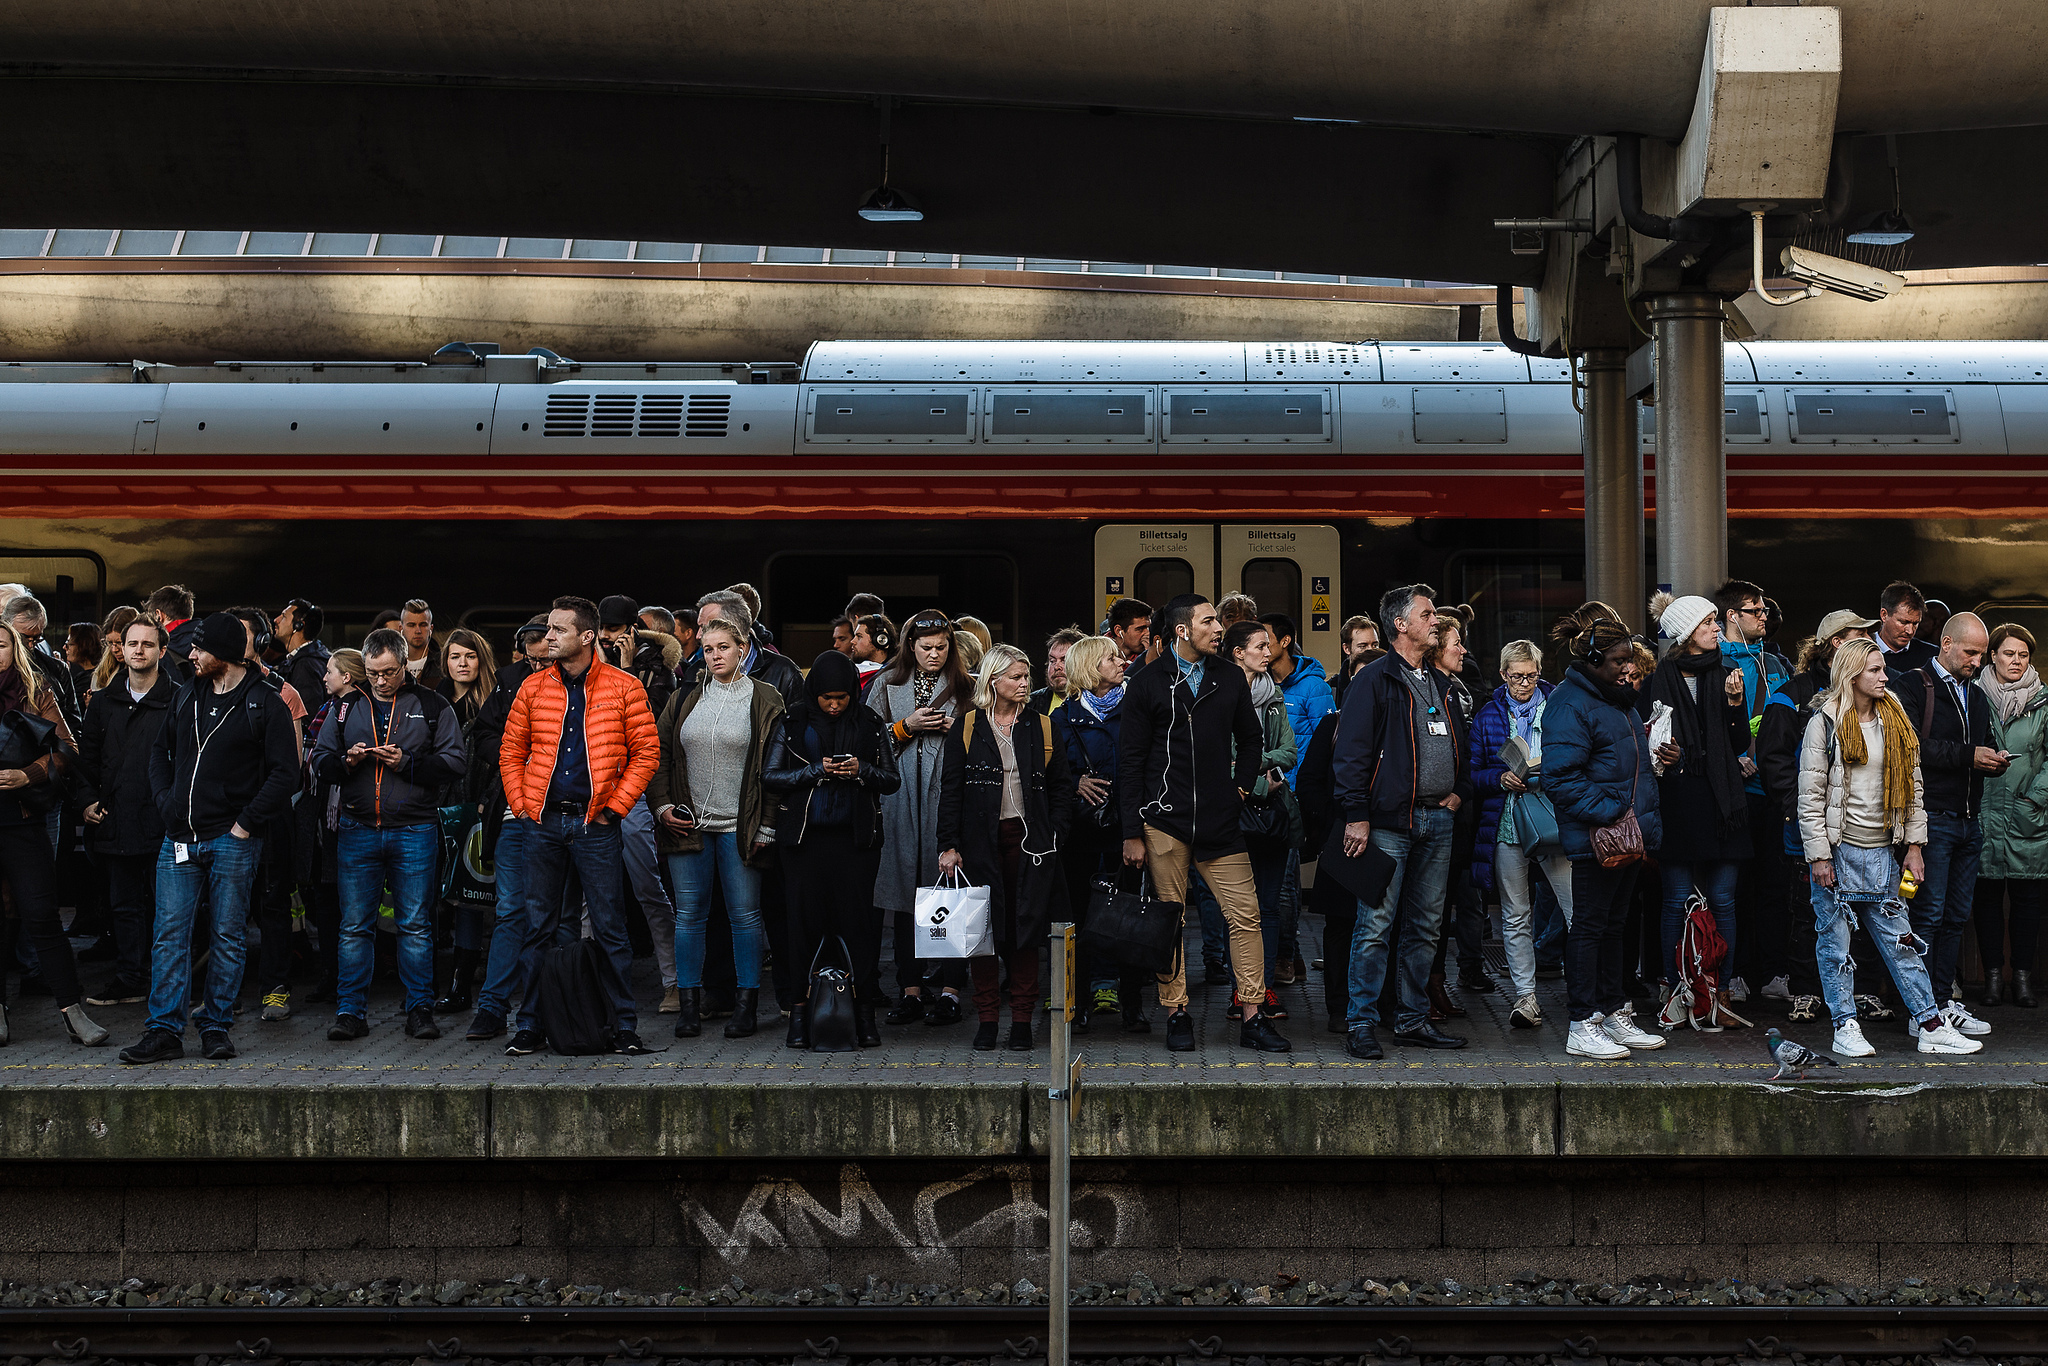 People waiting for the train in Oslo, Norway. Photo: Tore Bustad, CC